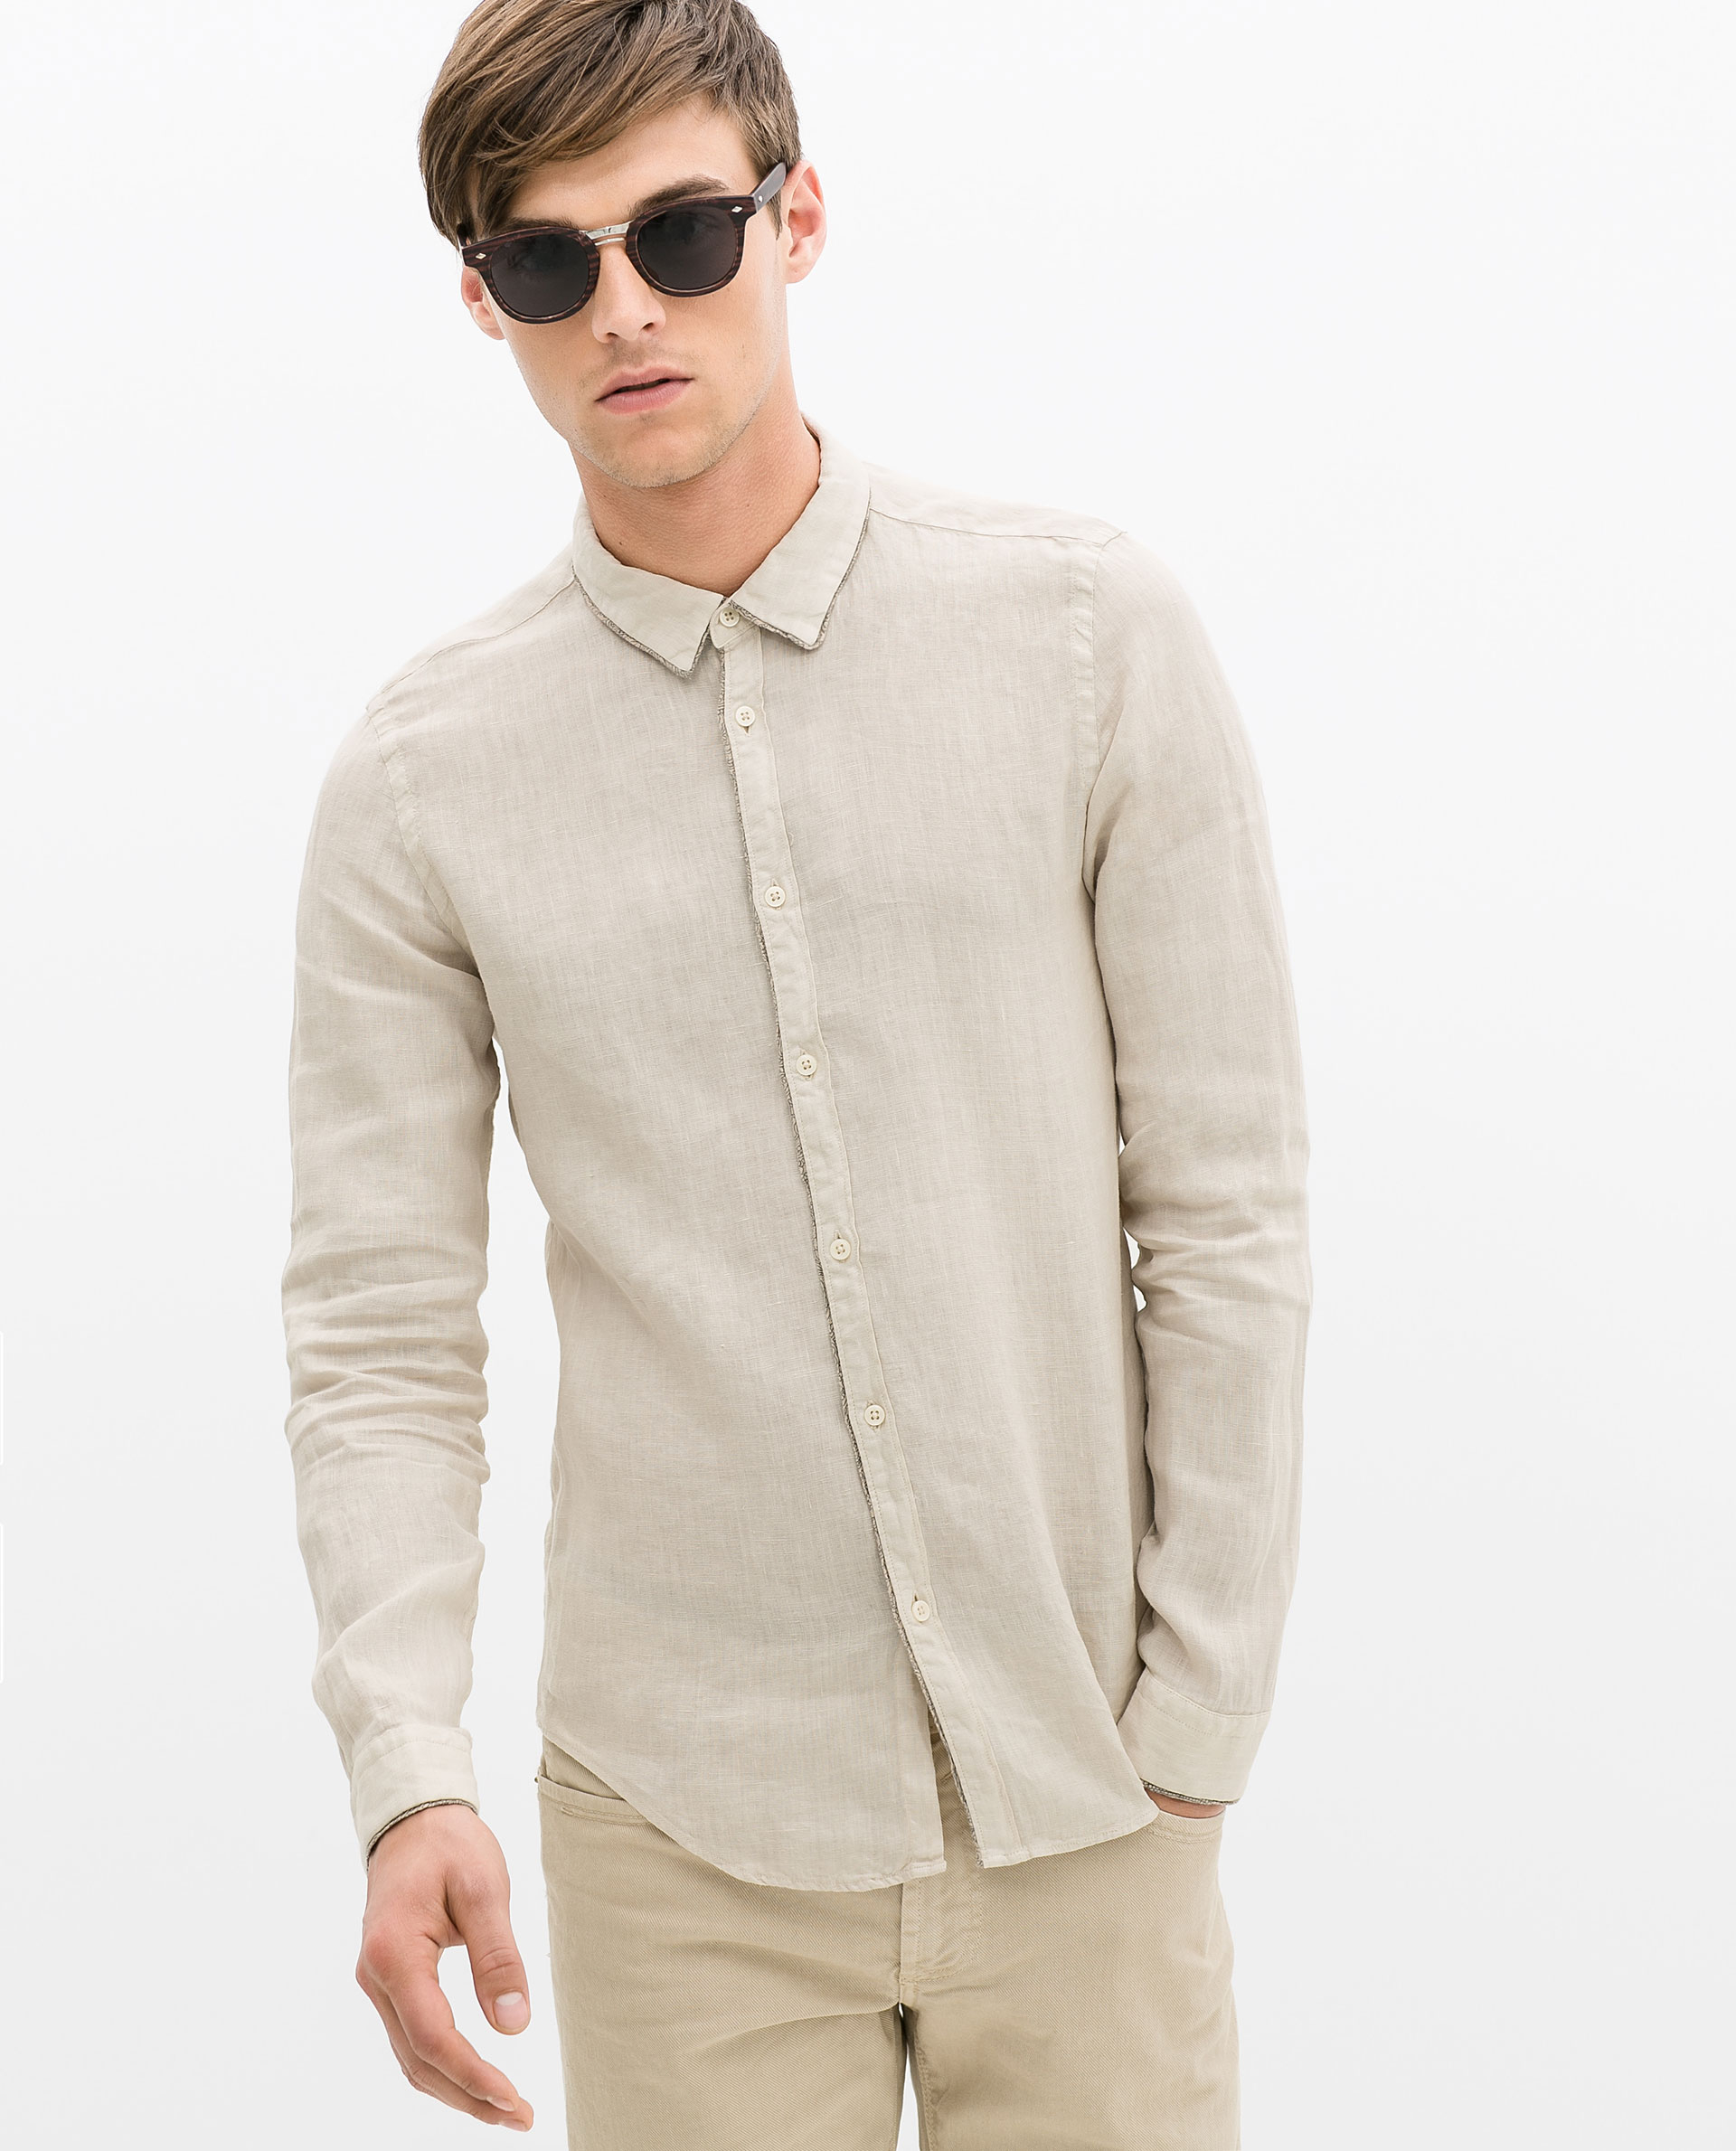 Mens Beige Shirts | Artee Shirt